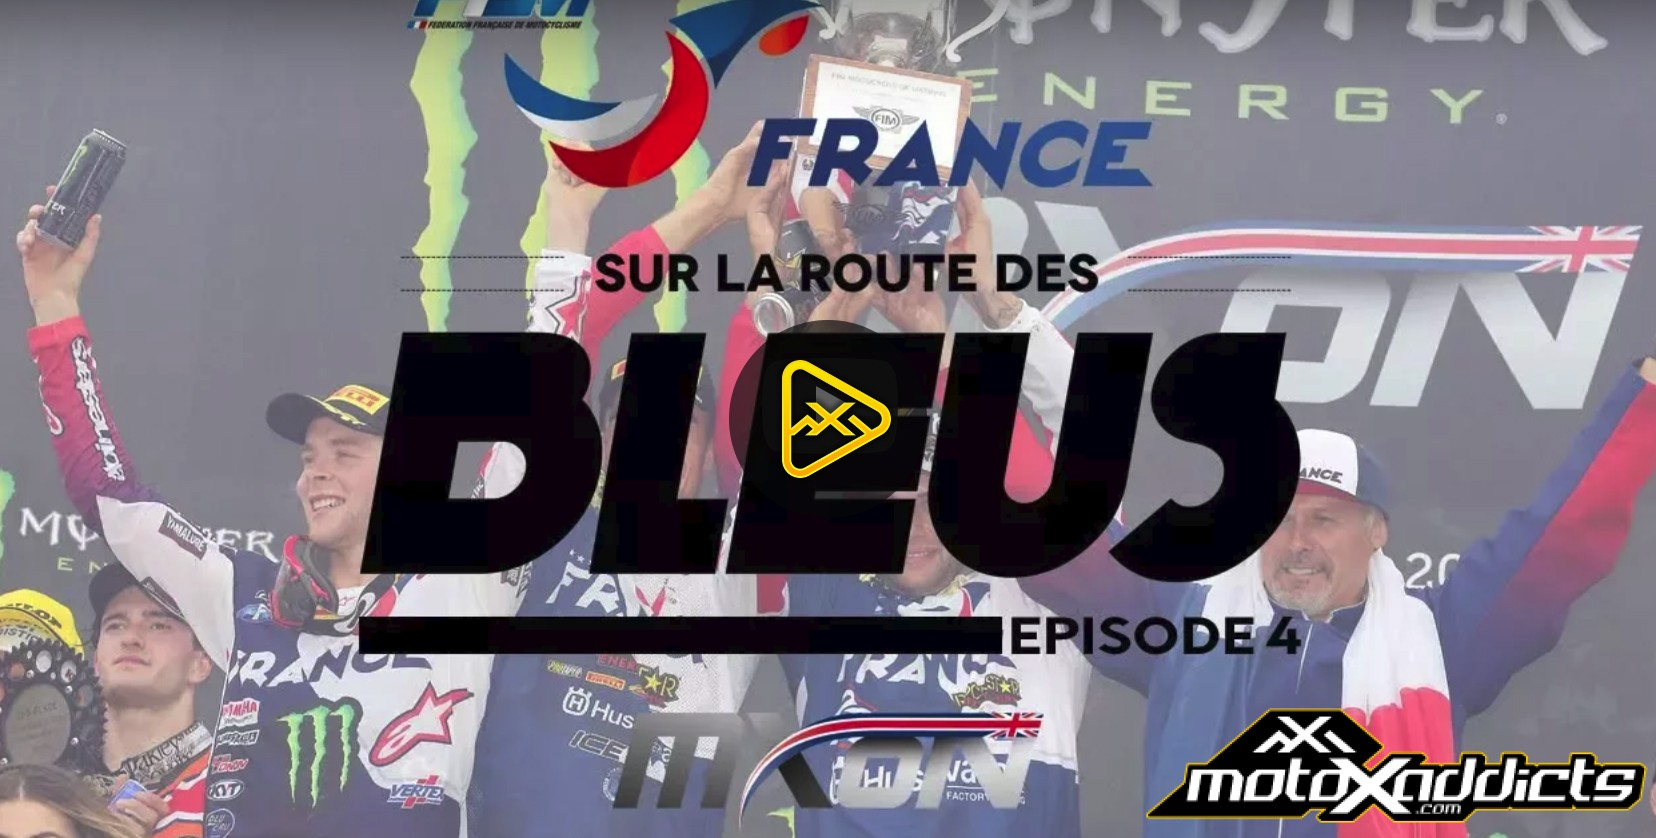 On the road to the Blues: BHS with Team France at MXoN